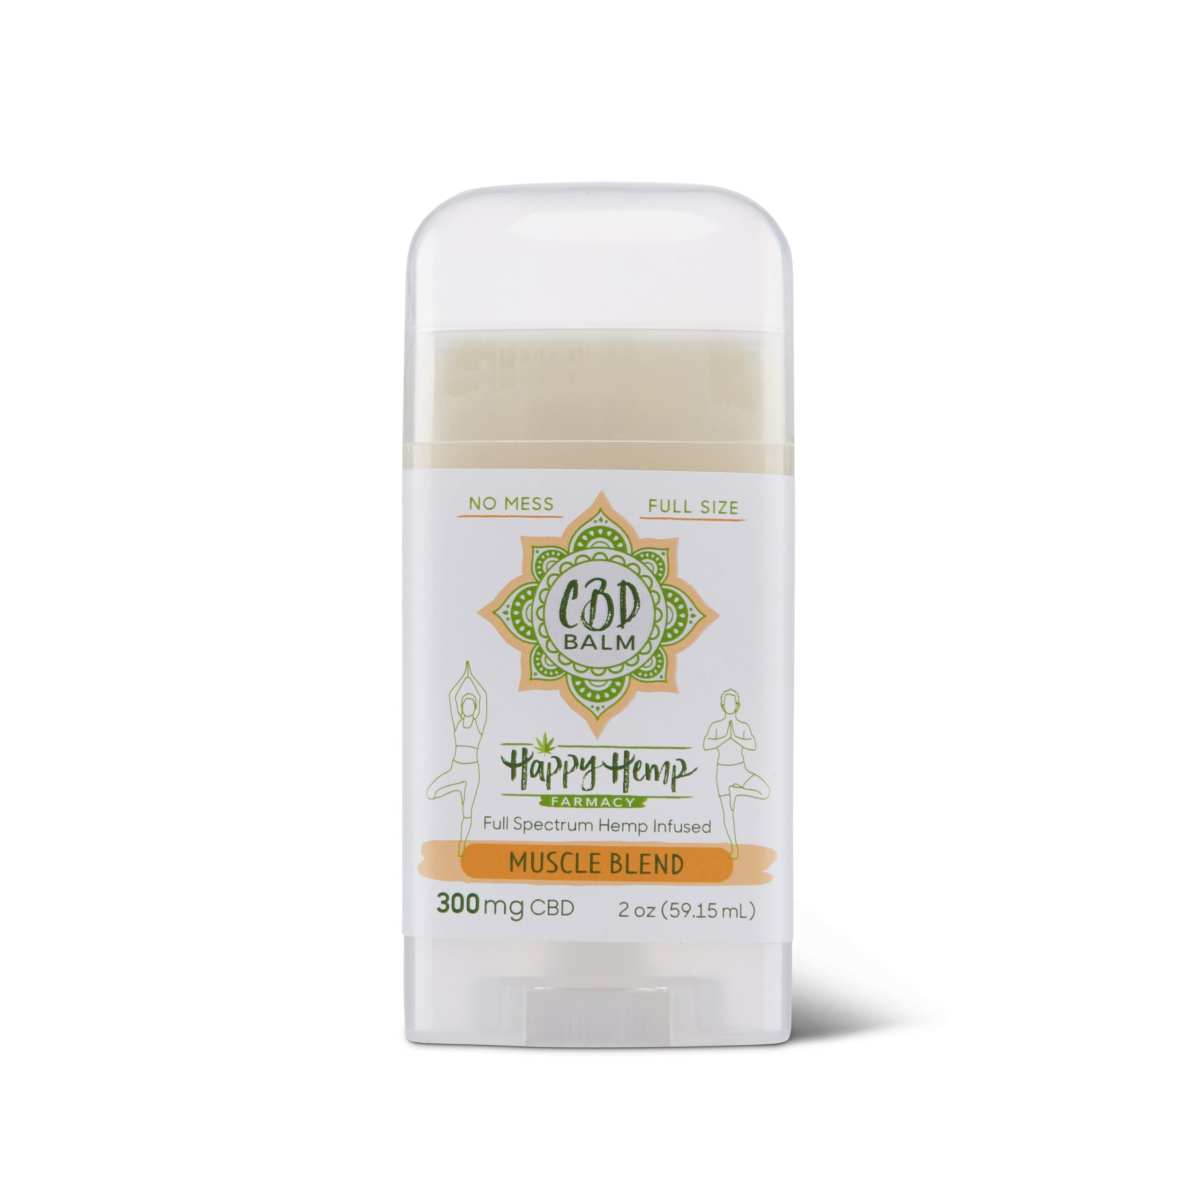 Happy Hemp No Mess CBD Balm